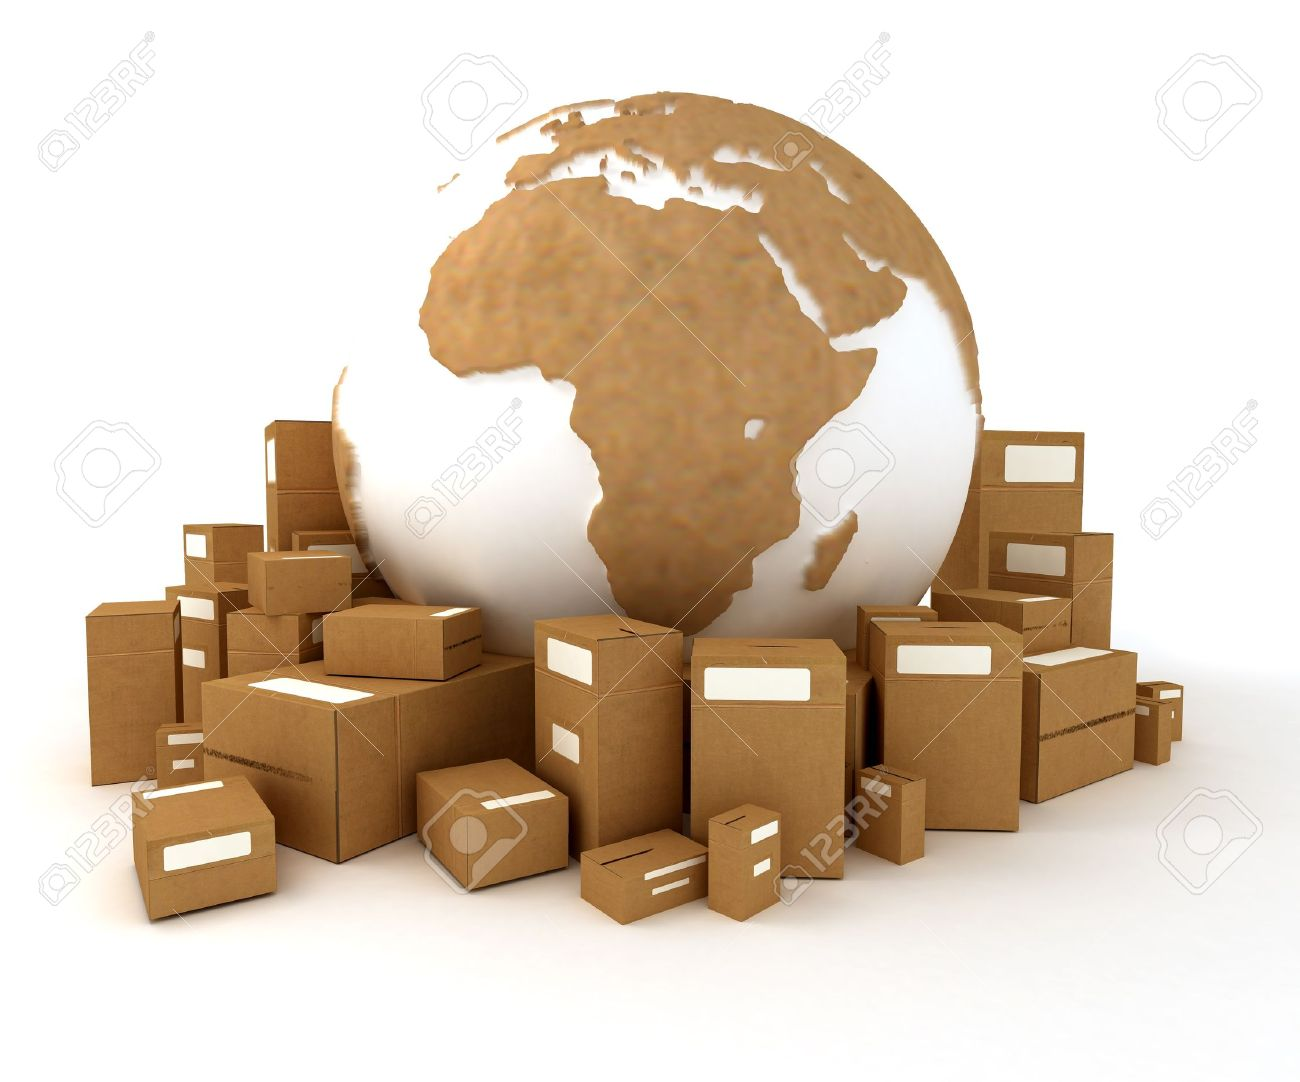 Cardboard textured world Europe oriented with a heap of packages - 4387580